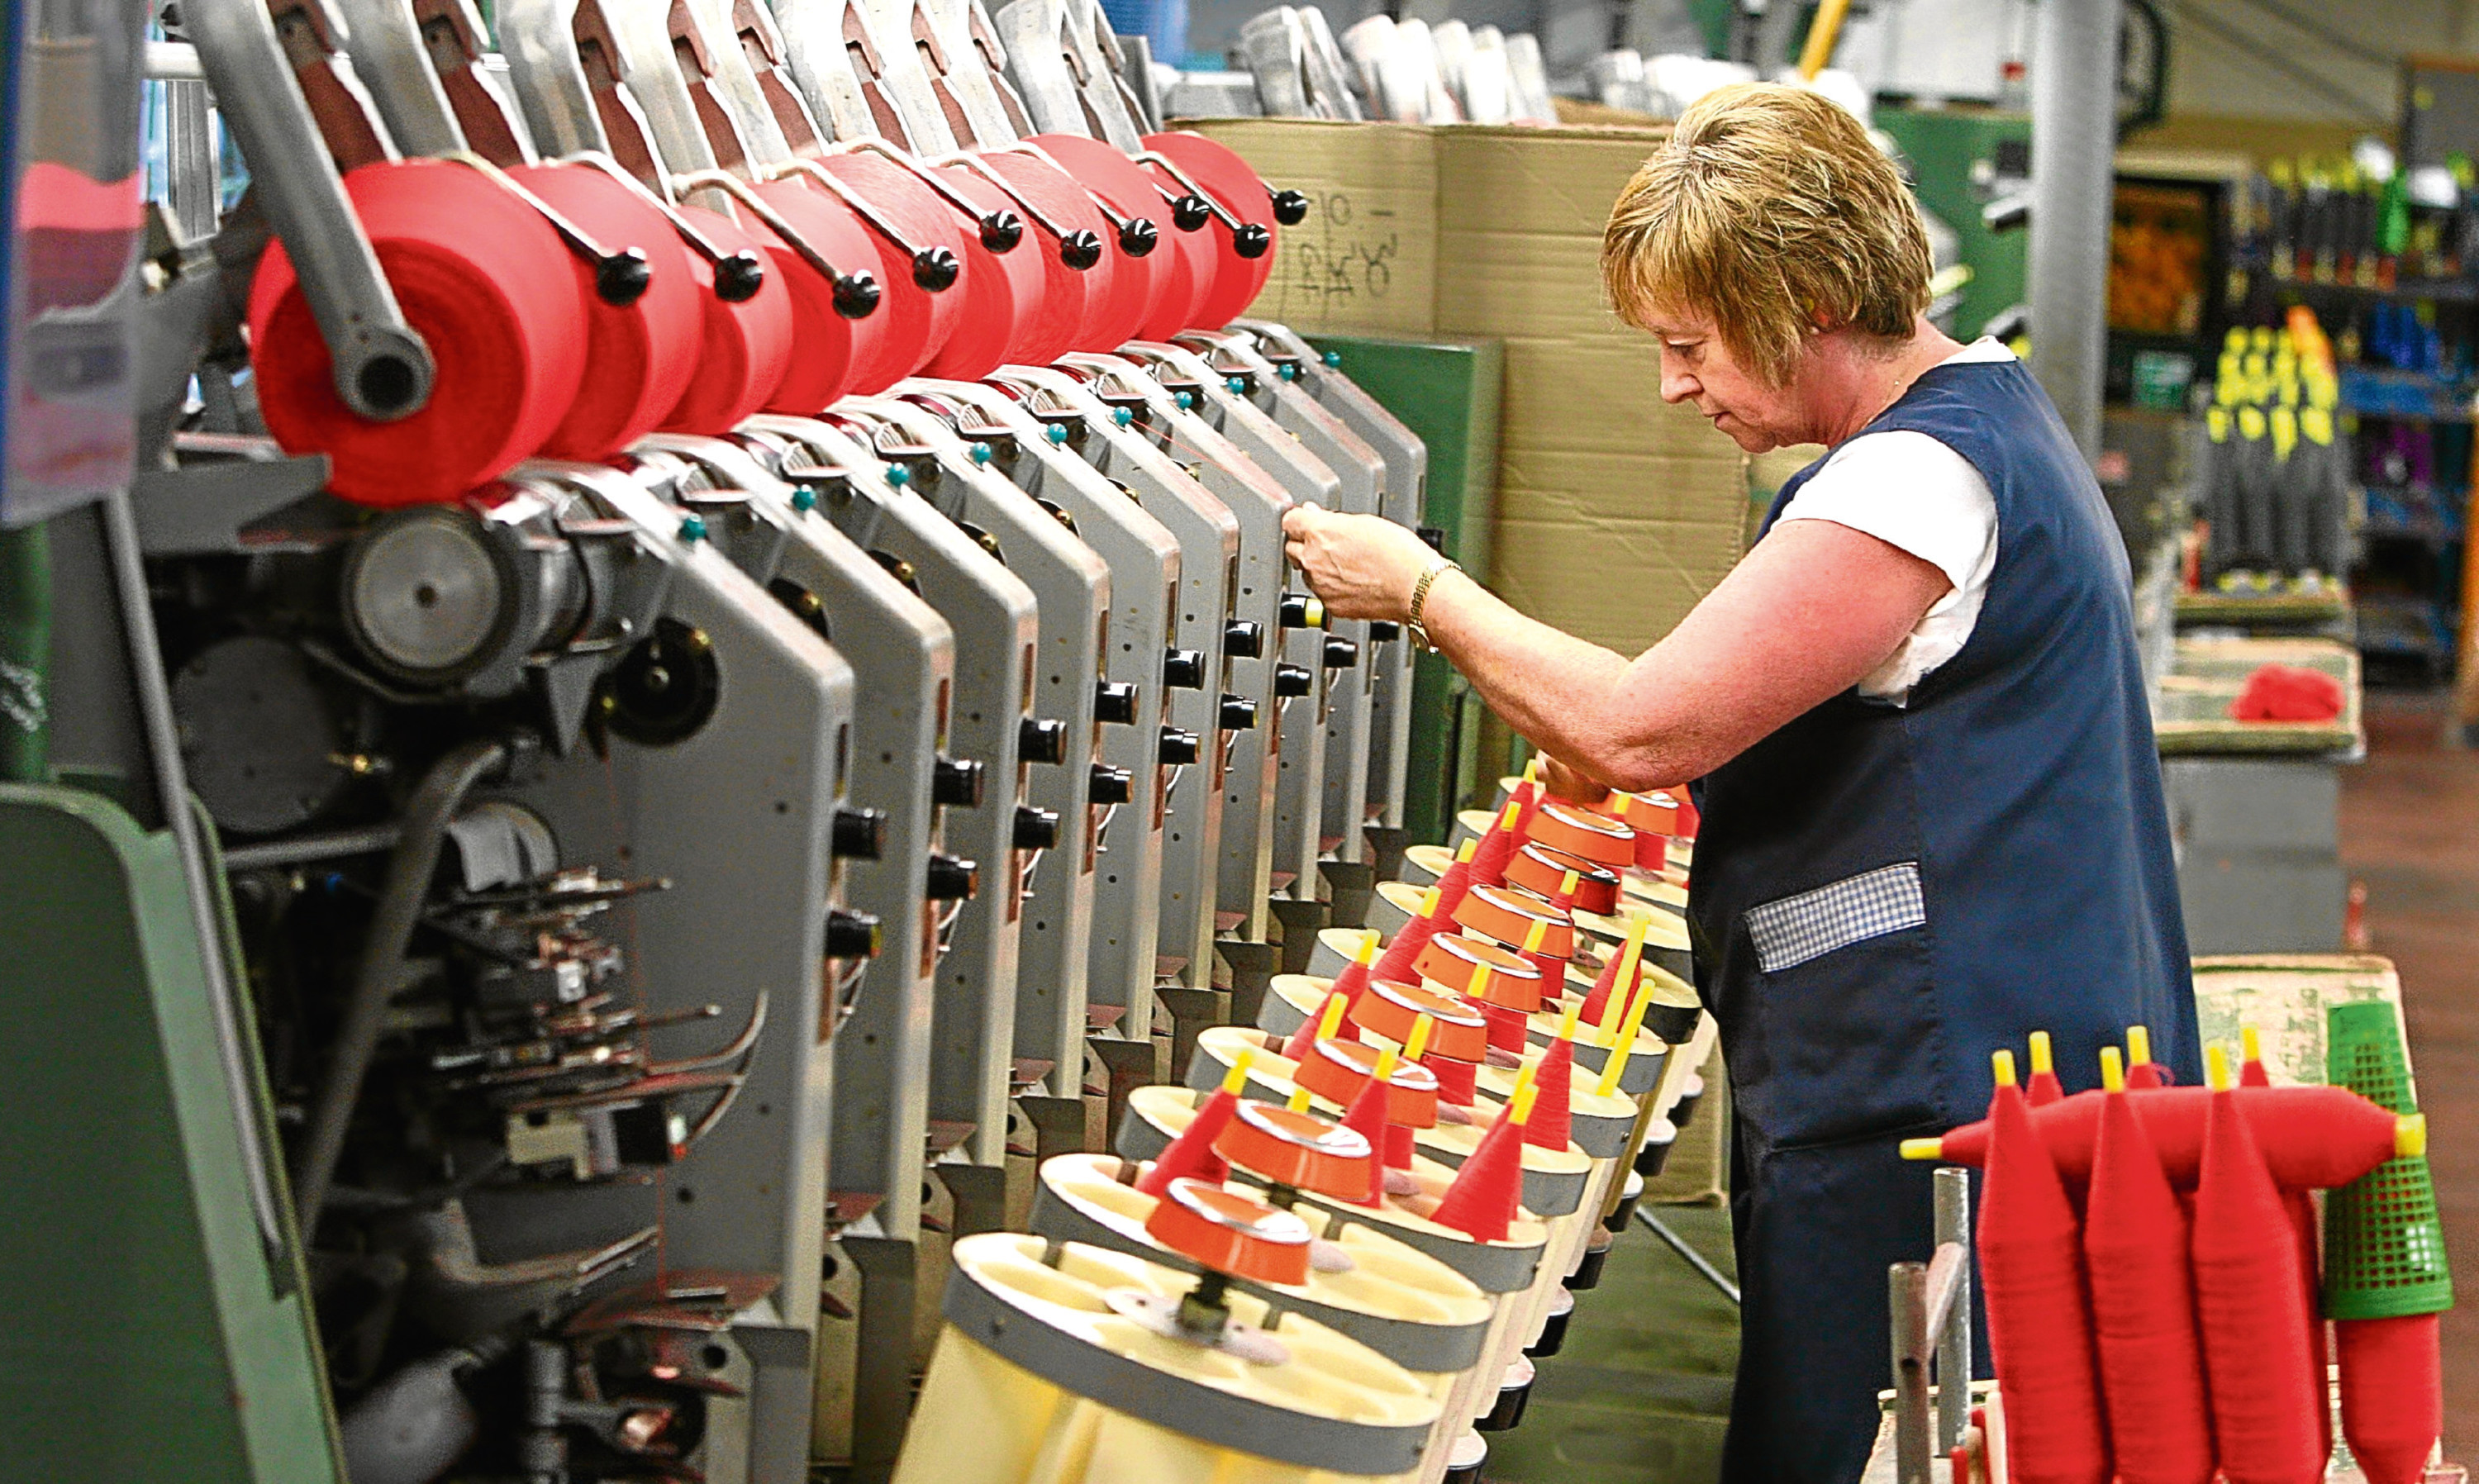 A worker involved in the cashmere yarn manufacturing process at Todd & Duncan's Lochleven Mill in Kinross.